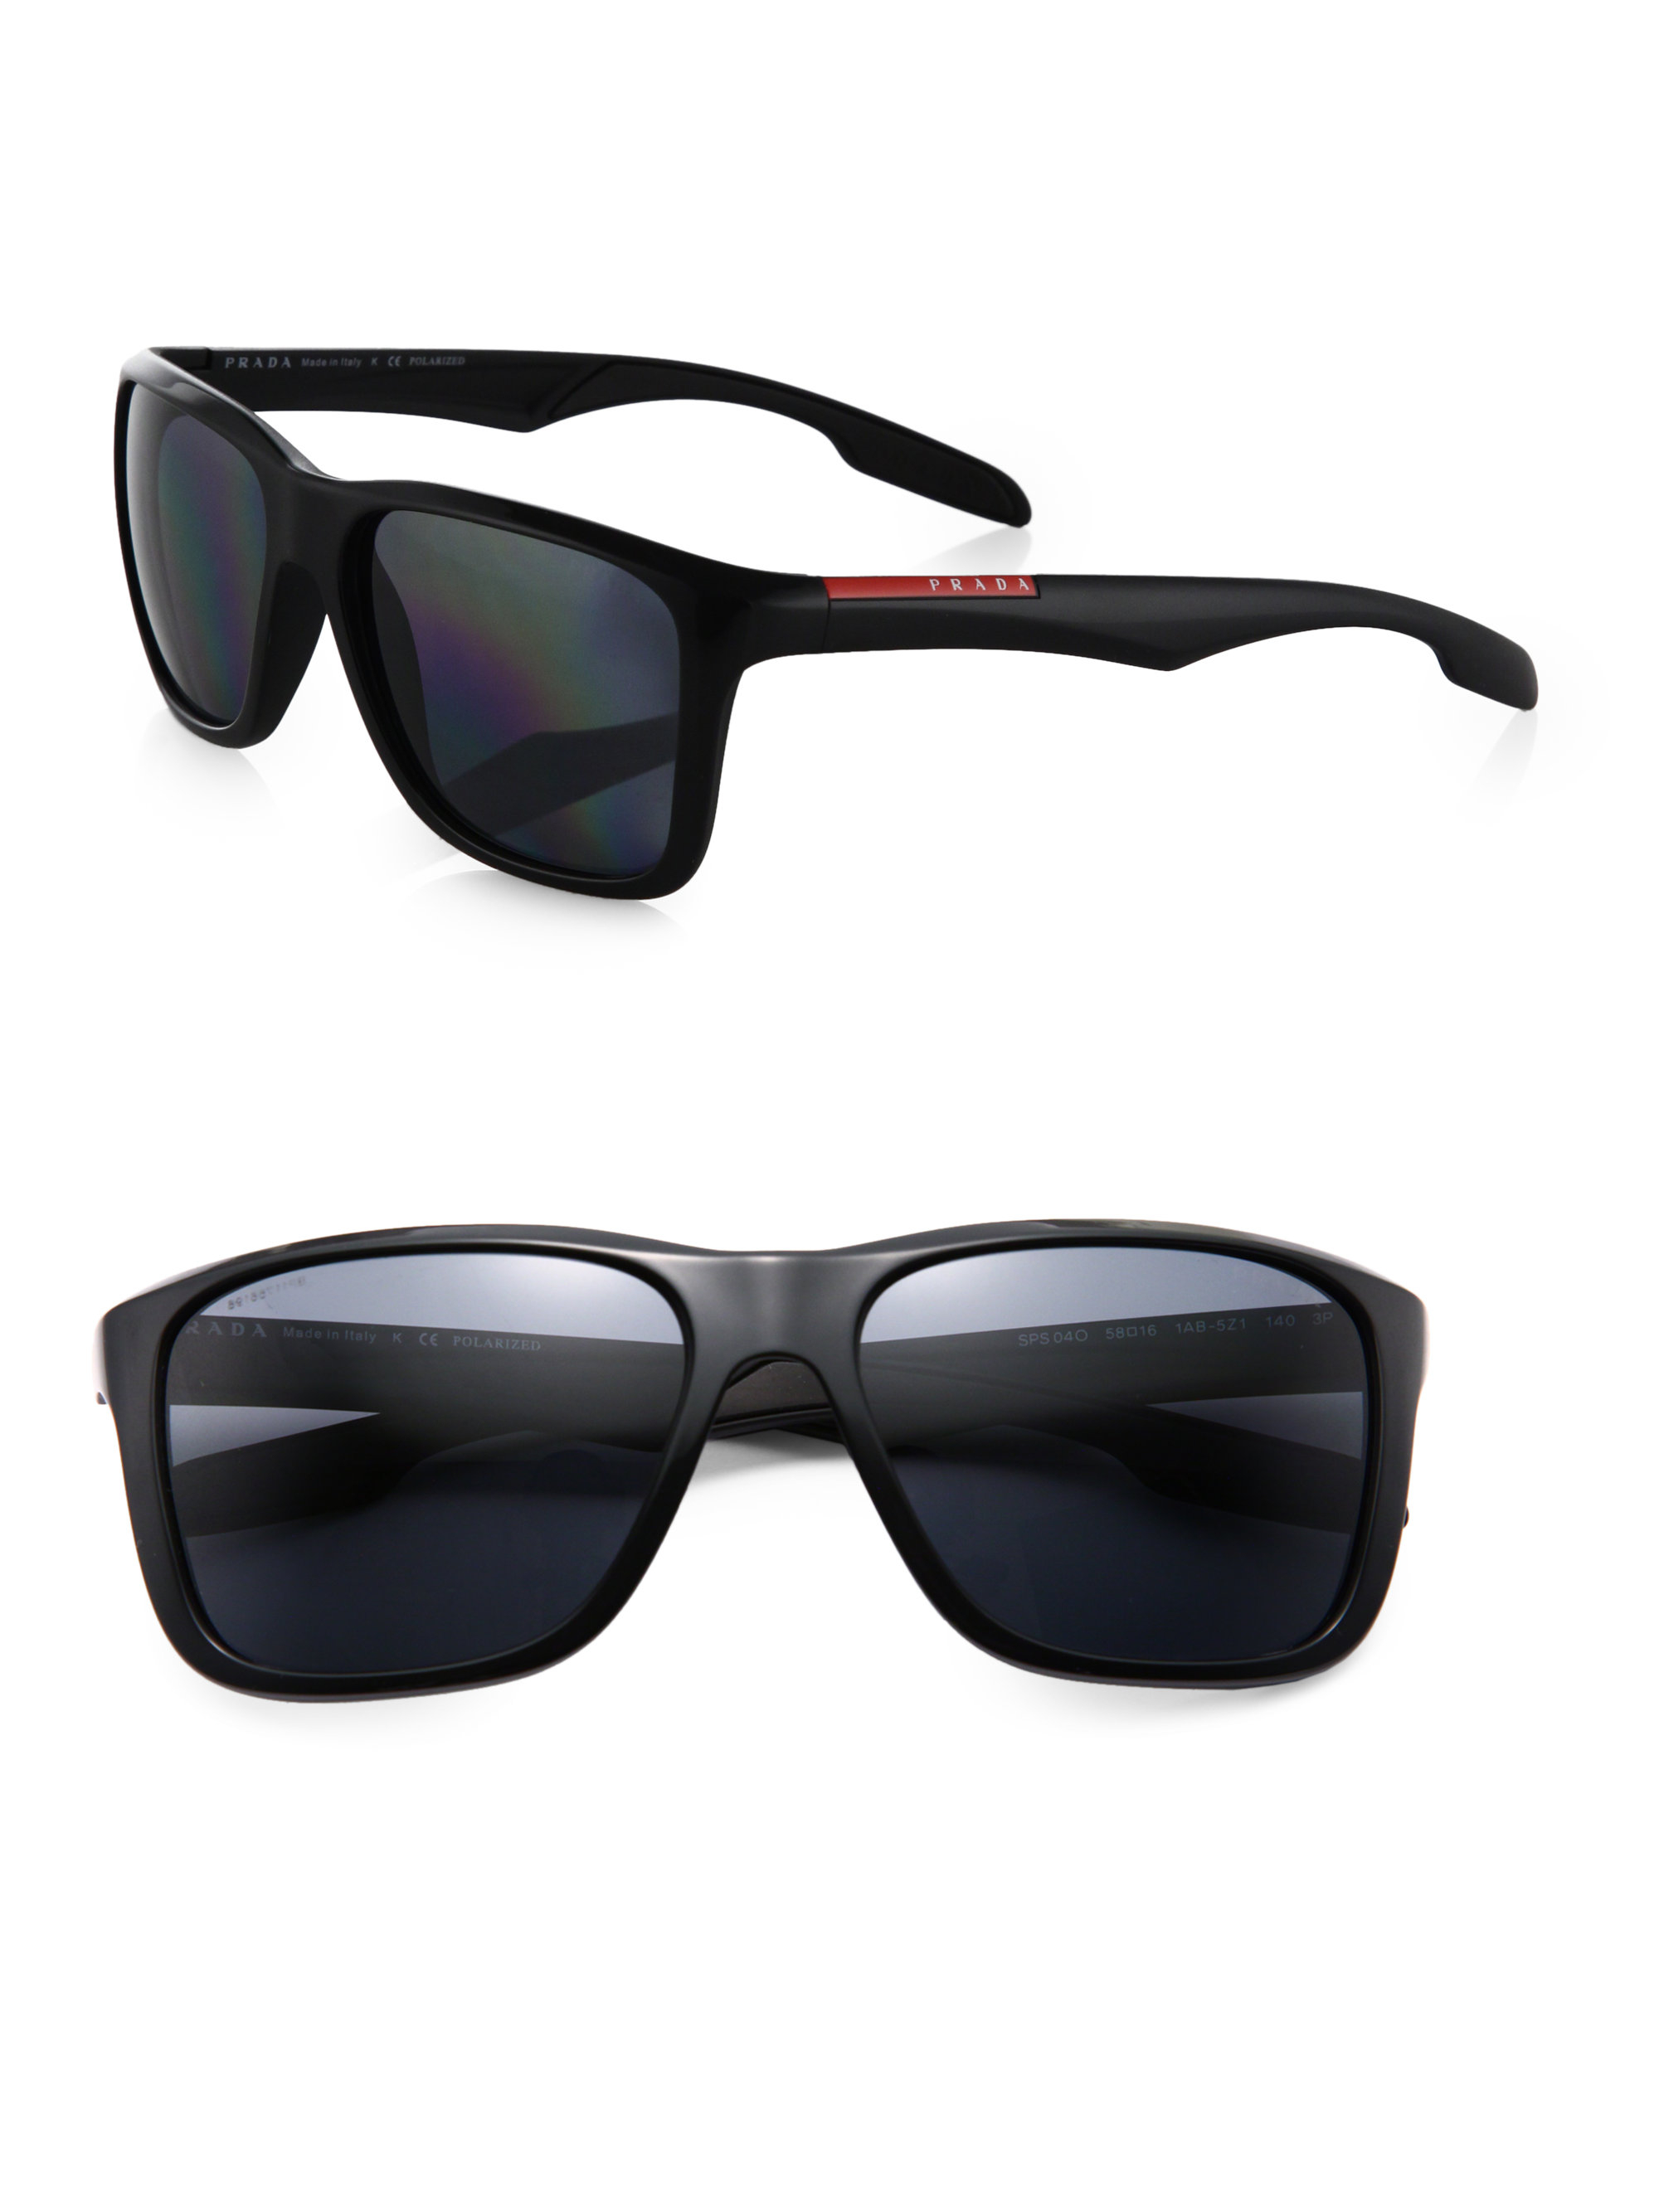 dating website sunglasses Welcome to the simple online dating site, here you can chat, date, or just flirt with men or women sign up for free and send messages to single women or man an example of this would be clothes, sunglasses and other similar products.